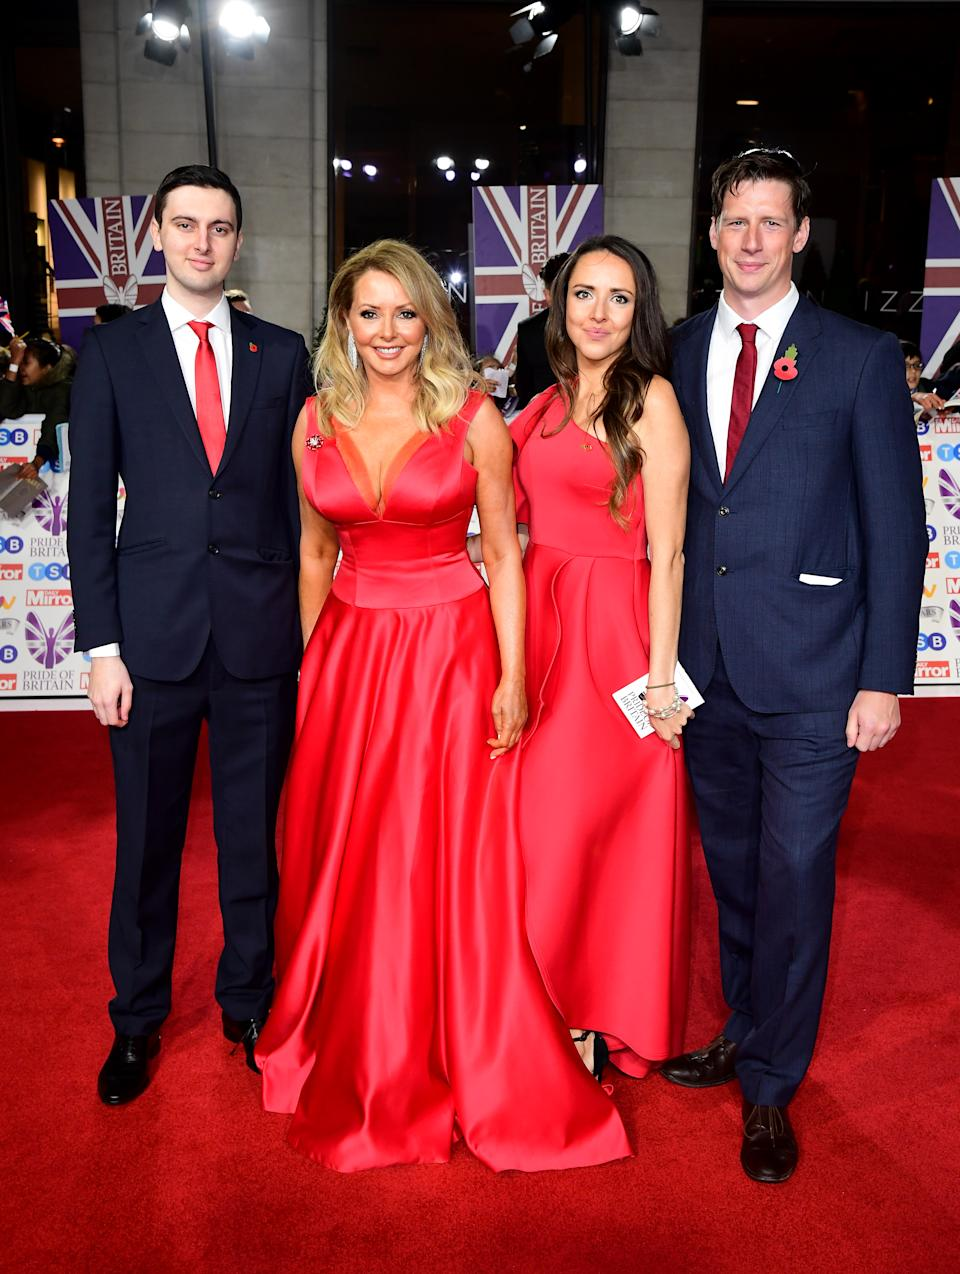 Cameron King, Carol Vorderman, Katie King and guest arriving for the Pride of Britain Awards held at the The Grosvenor House Hotel, London. (Photo by Ian West/PA Images via Getty Images)